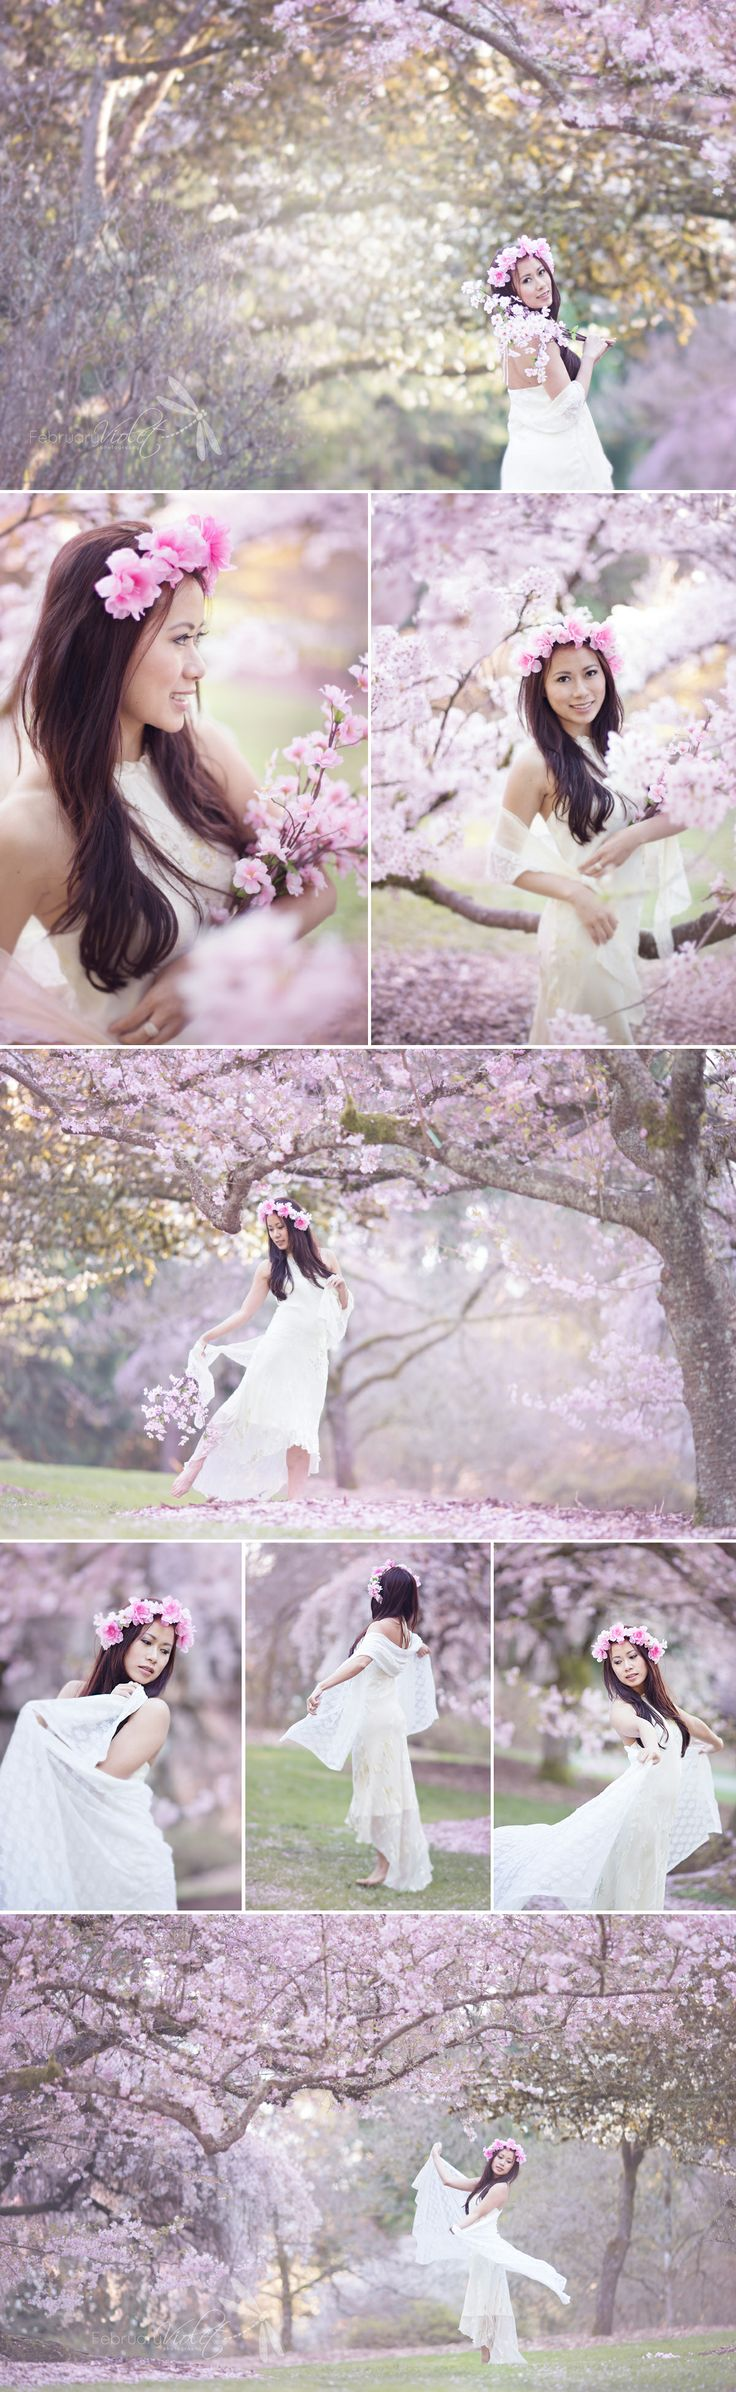 Spring cherry blossom photo session - February Violet Photography » Seattle and Spokane WA Photographer | high school senior – wedding » sakura - #februaryvioletphotography